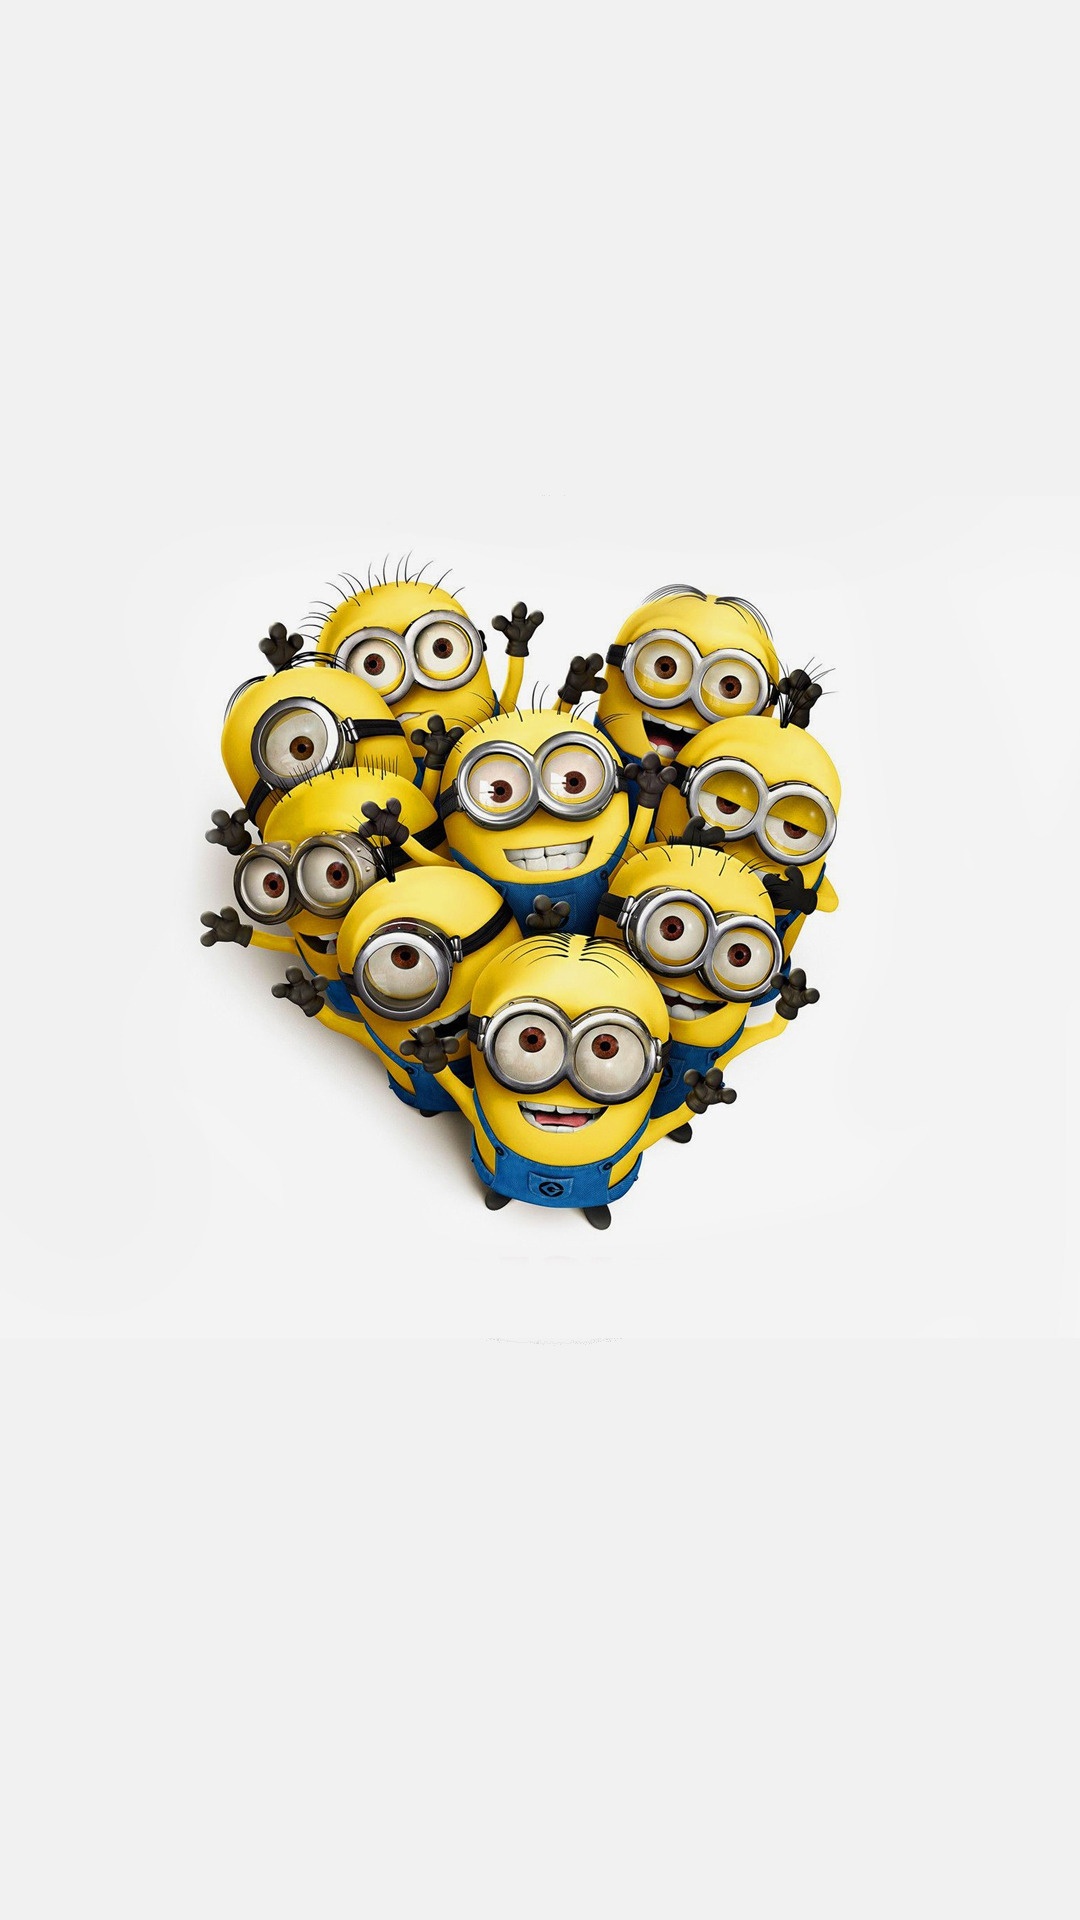 Minions Love Wallpaper For Iphone : Heart Of Minions iPhone 6 / 6 Plus and iPhone 5/4 Wallpapers